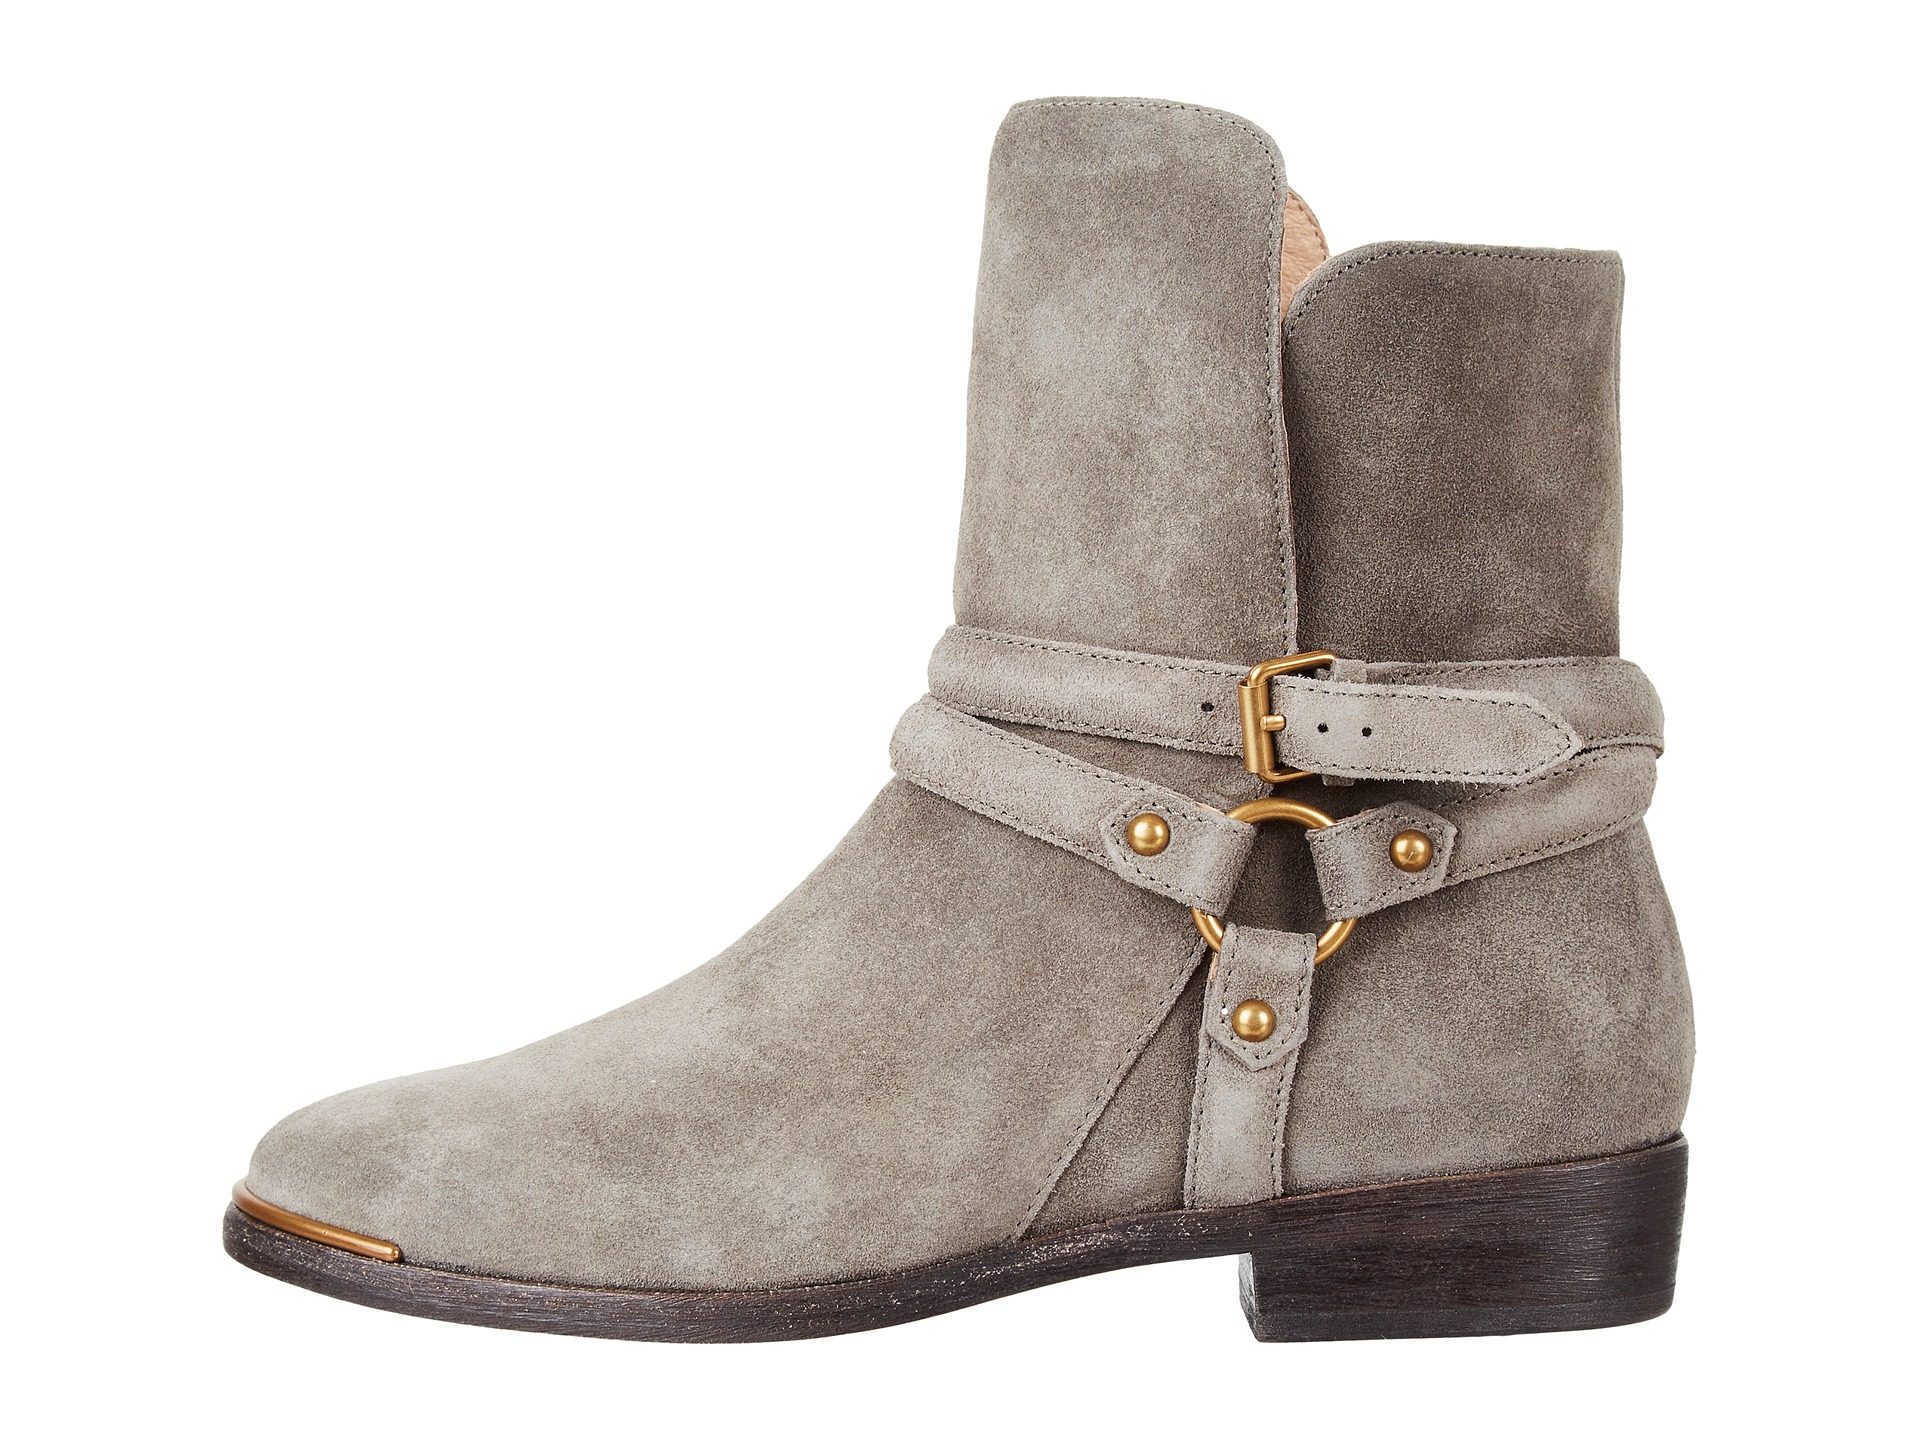 Ugg Kelby At Zappos Com